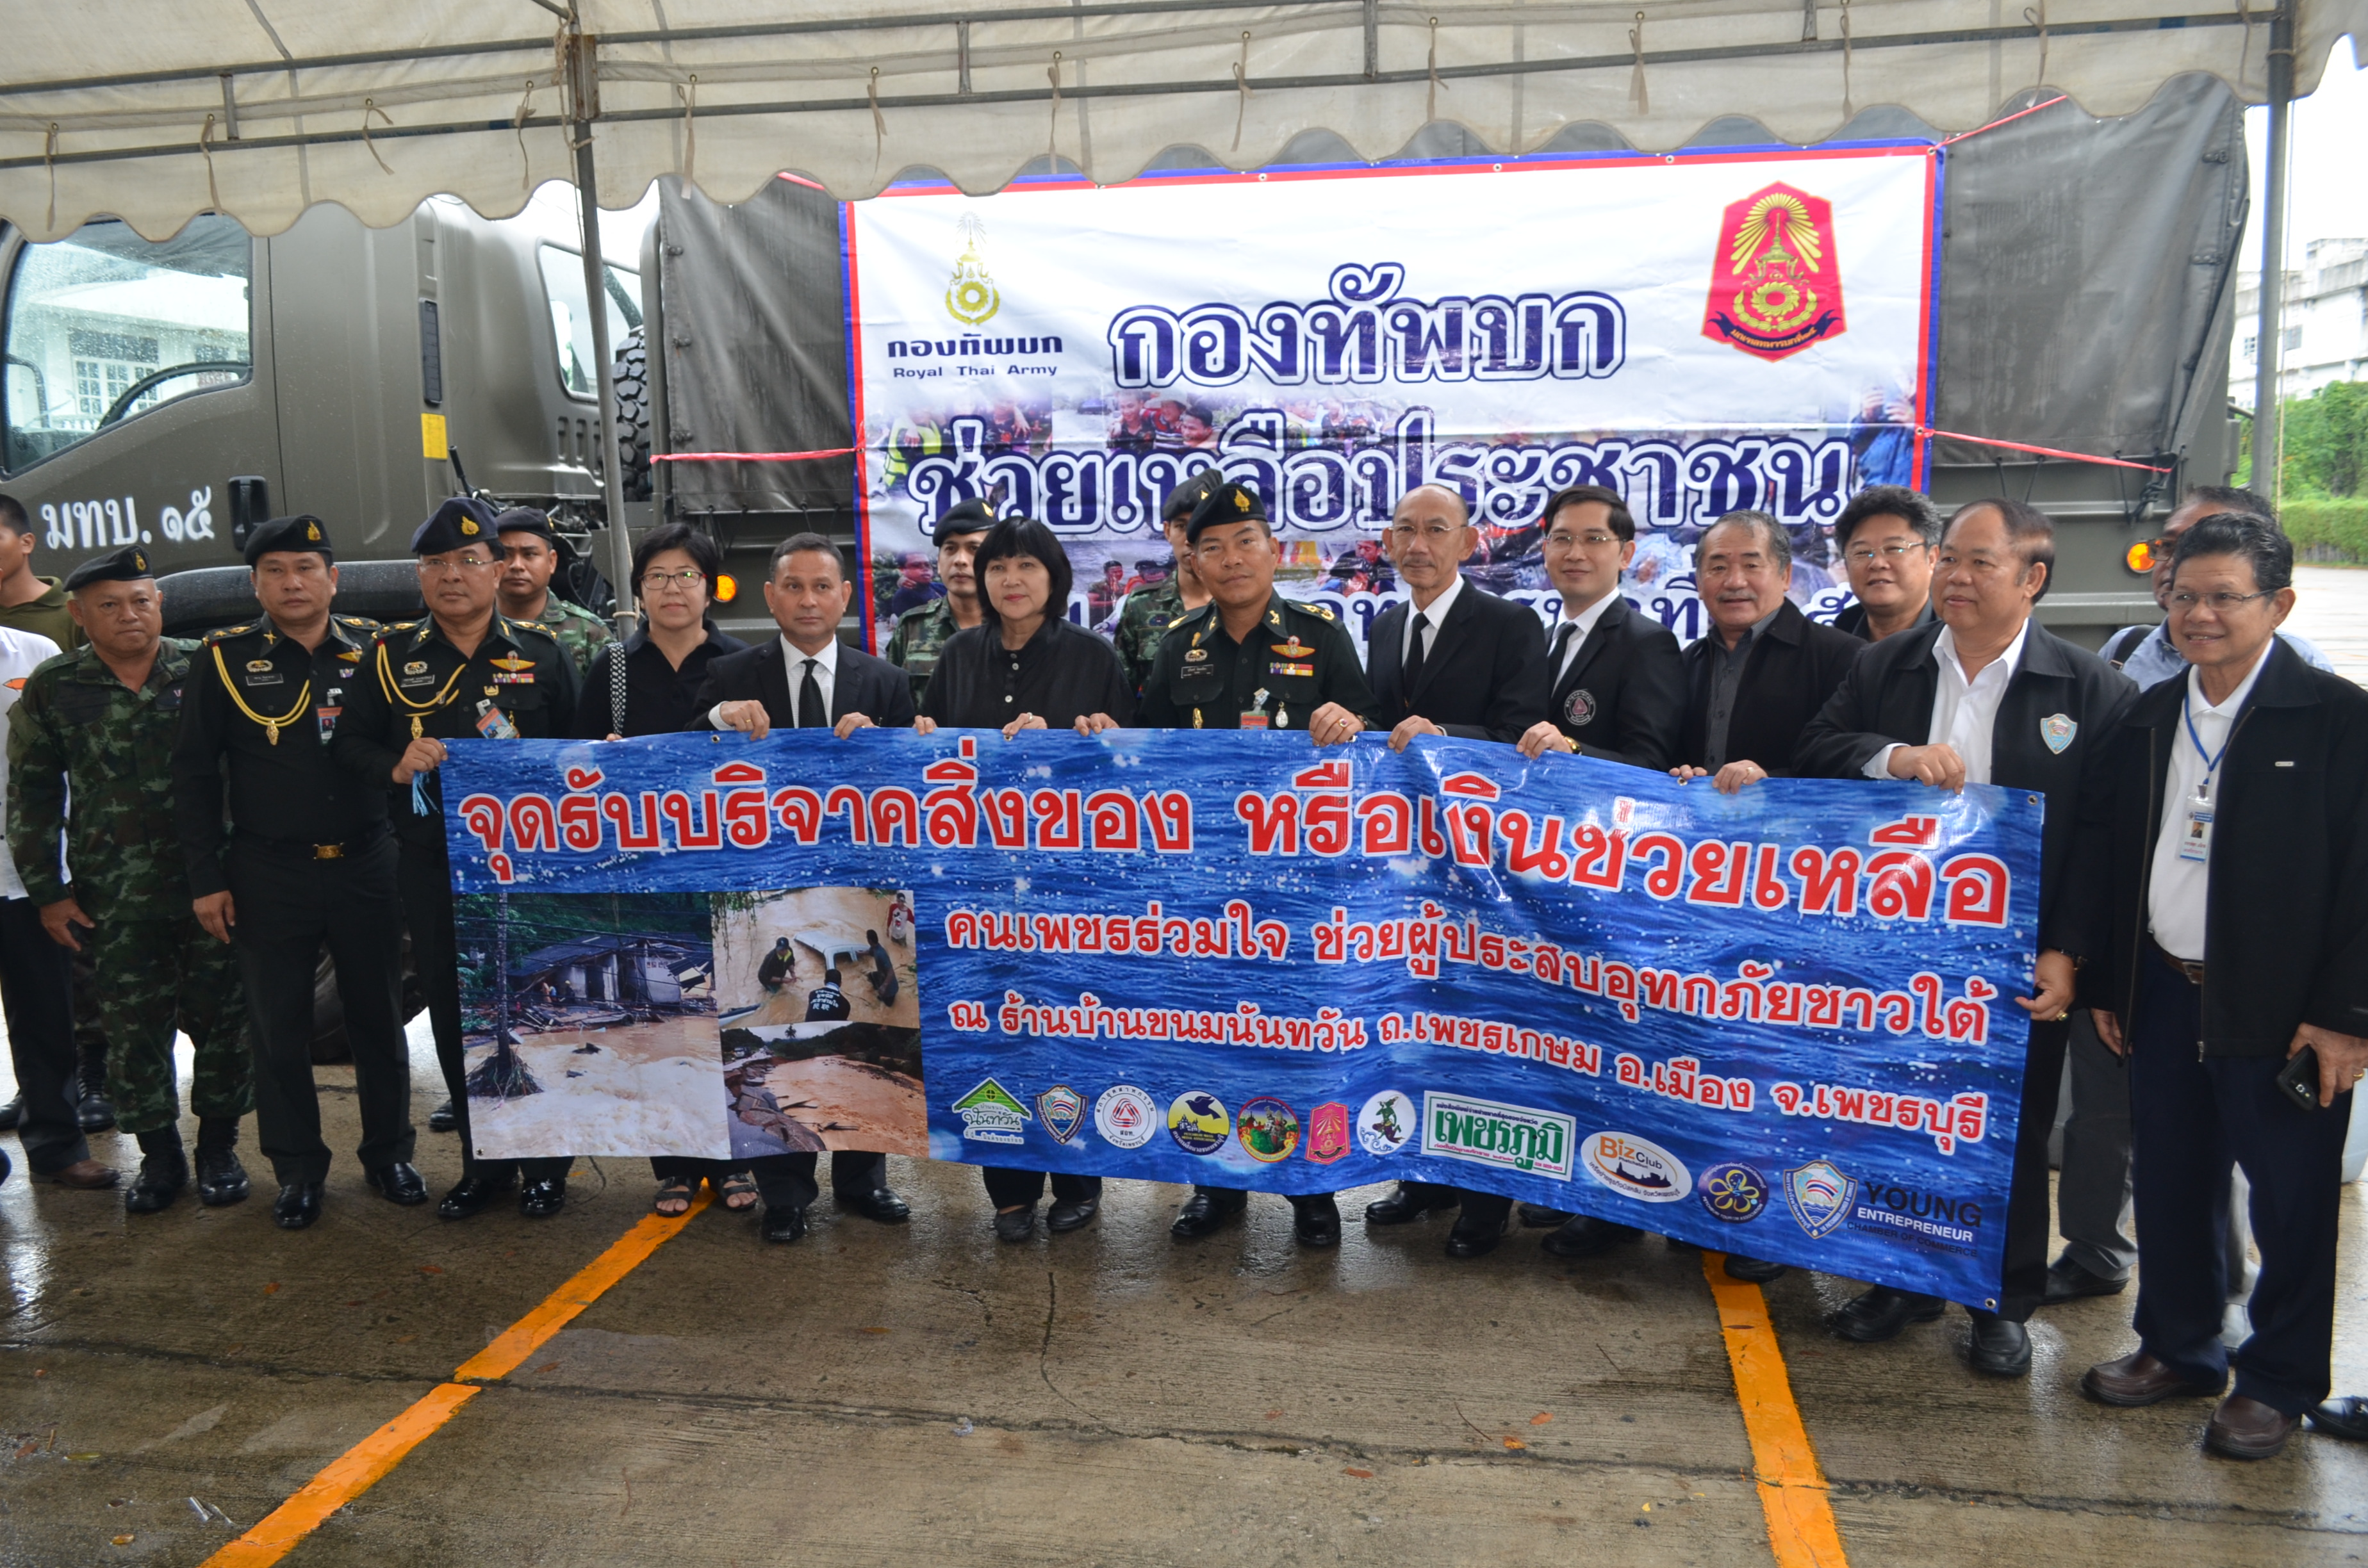 Thailand News 05-03-17 2 NNT Lampang to apply solar power to drought relief 1JPG